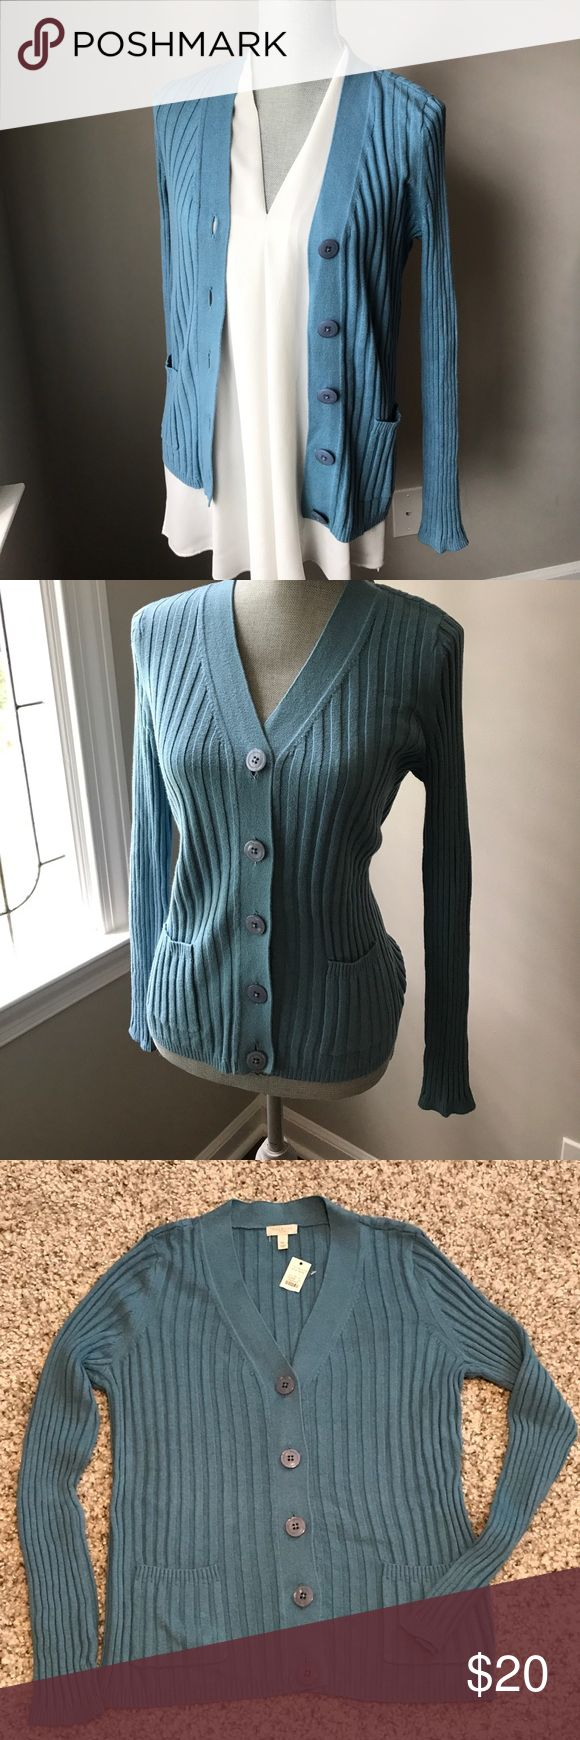 "Talbots Petite Sweater / Cardigan Talbots Petite (cotton-nylon-rayon) blend sweater is the perfect accessory for summer wear to go from outdoor  heat to indoor air conditioning. Beautiful if worn as cardigan or buttoned as a sweater on its own. Ribbed knit cardigan / sweater has five buttons, two patch pockets and measures approximately 16"" (unstretched) to 18"" (lightly stretched) armpit-to-armpit and 15"" underarm to hem. Talbots Sweaters Cardigans"